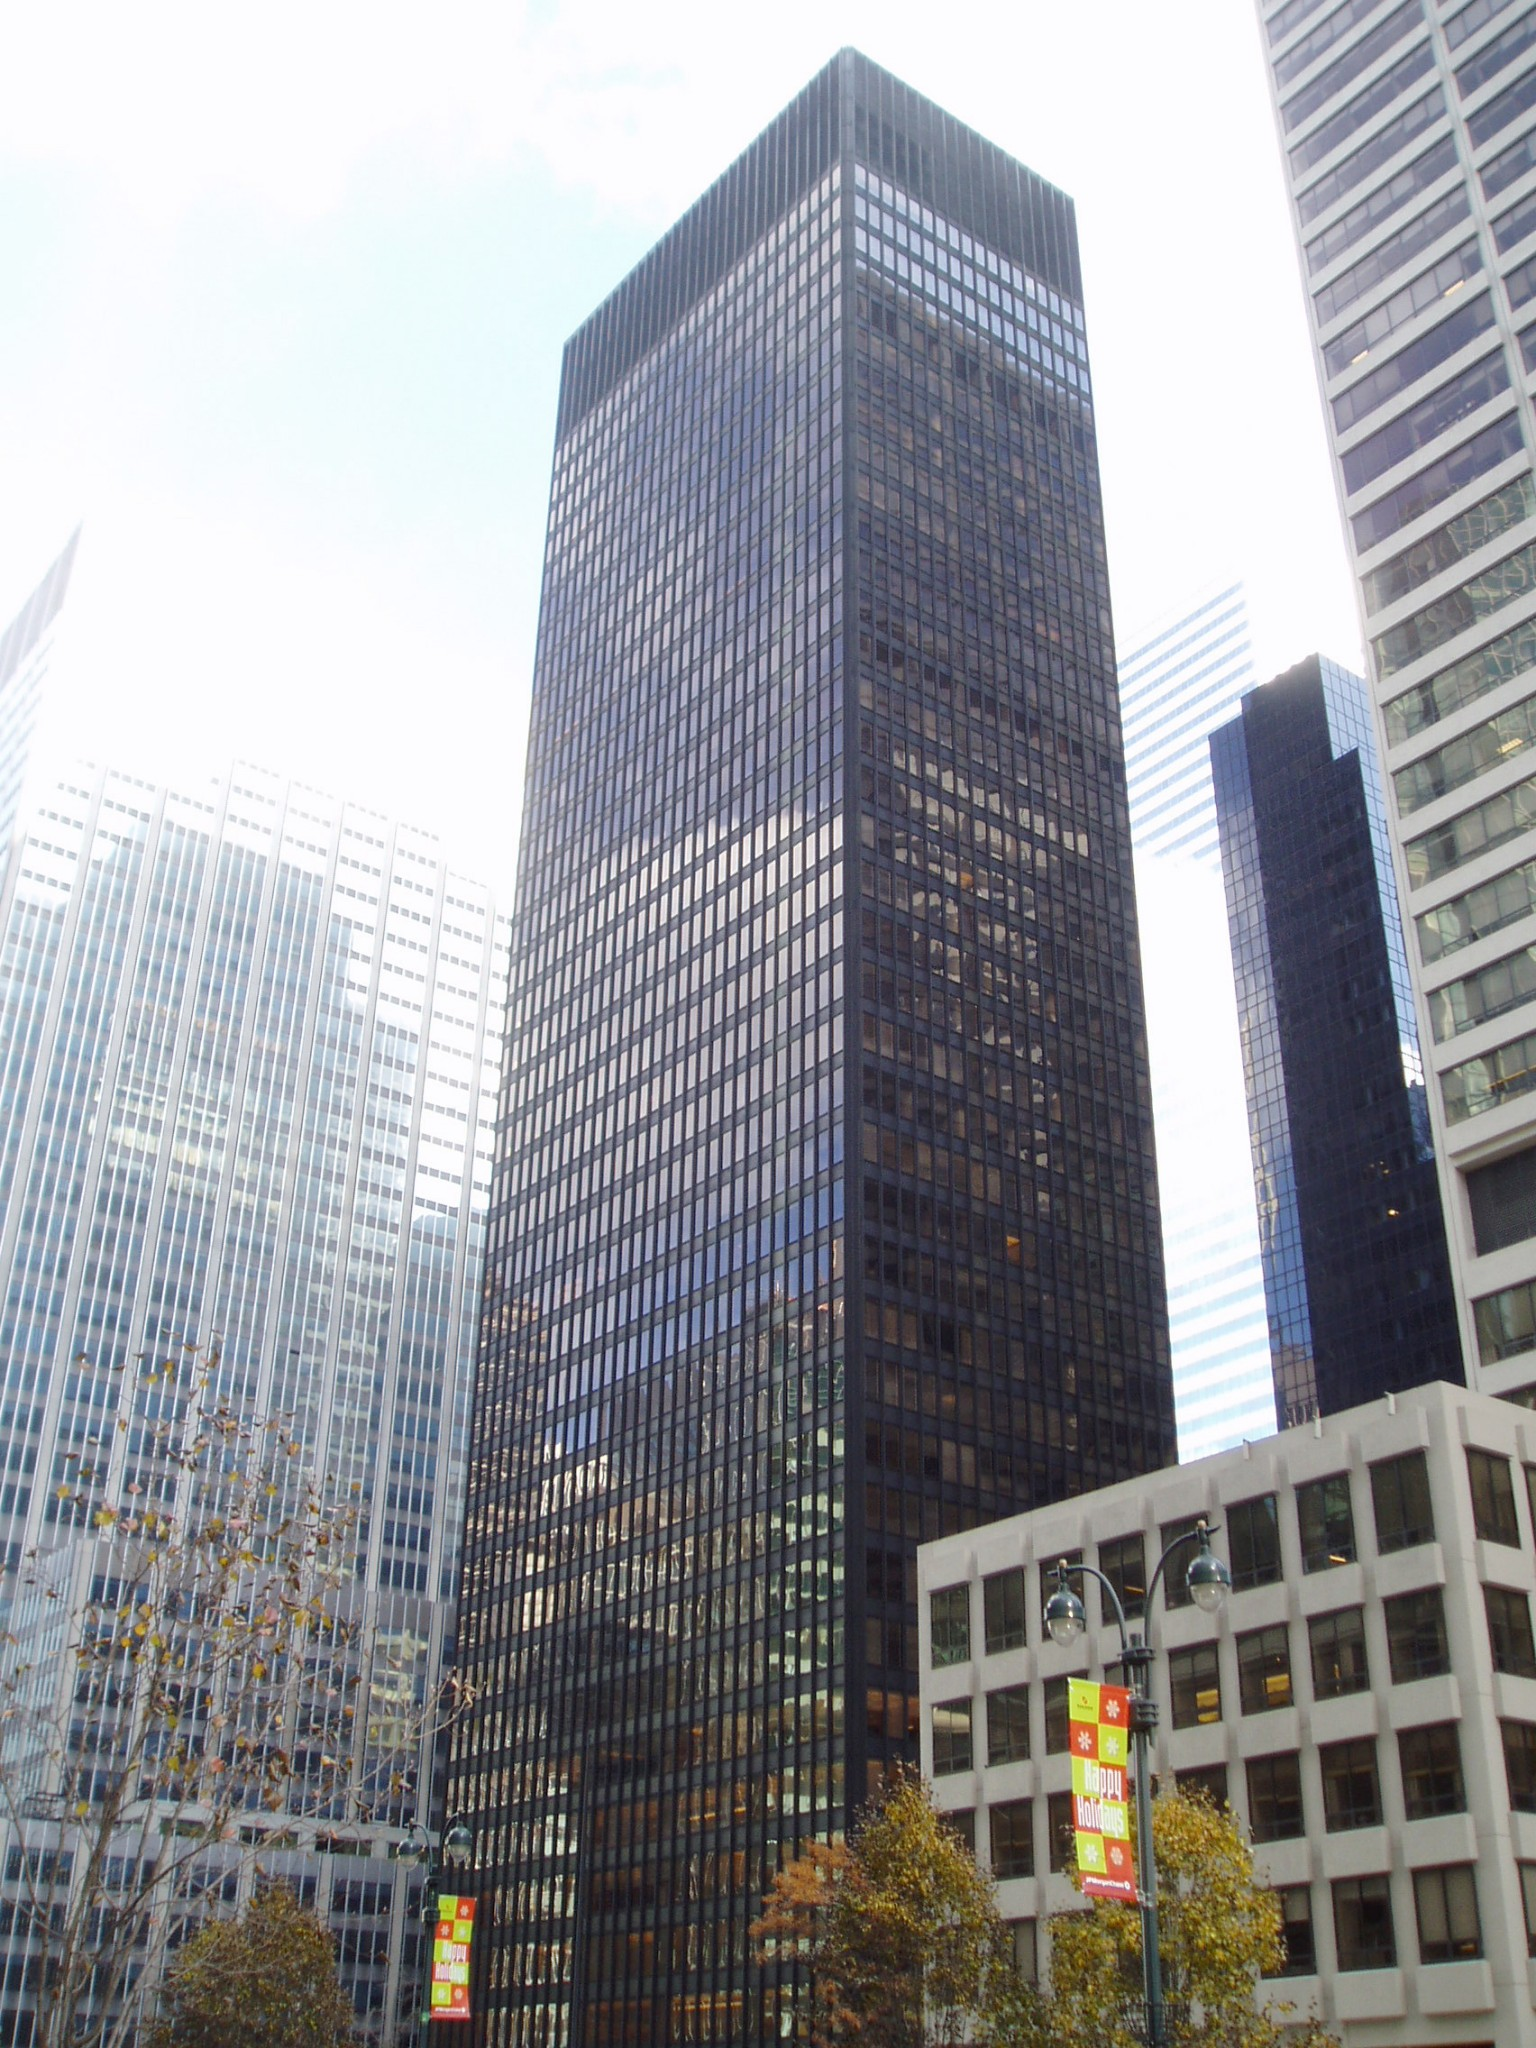 The Seagram Building. Source: Wikimedia/stevecadman